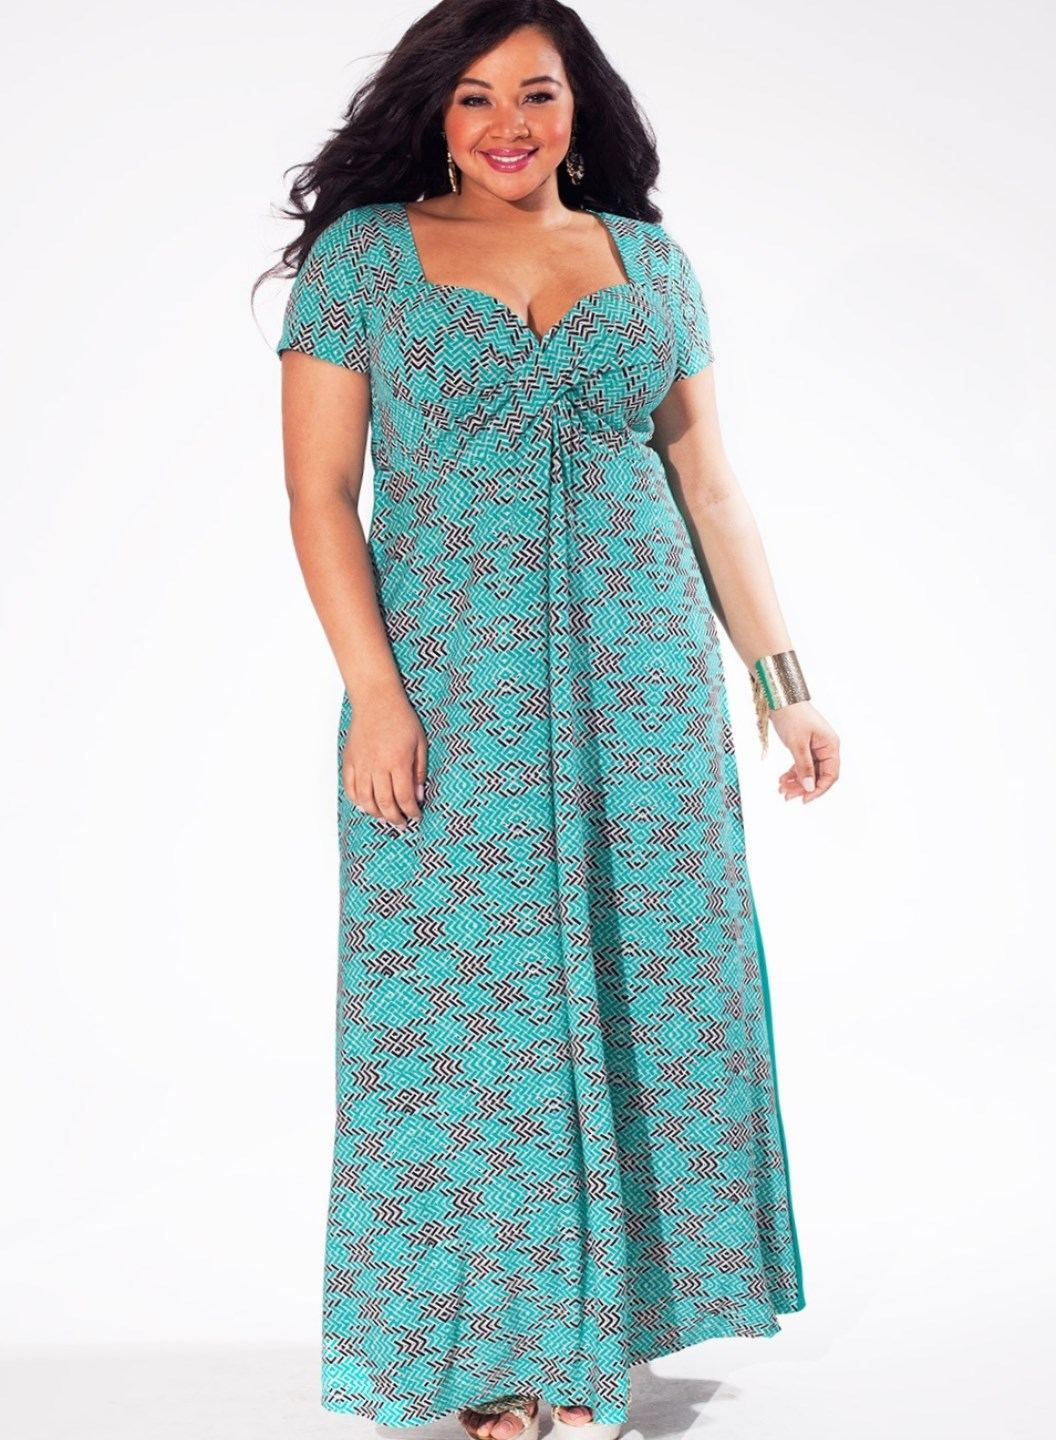 Large size maxi dresses - http://fashion-plus-size-womens.info ...